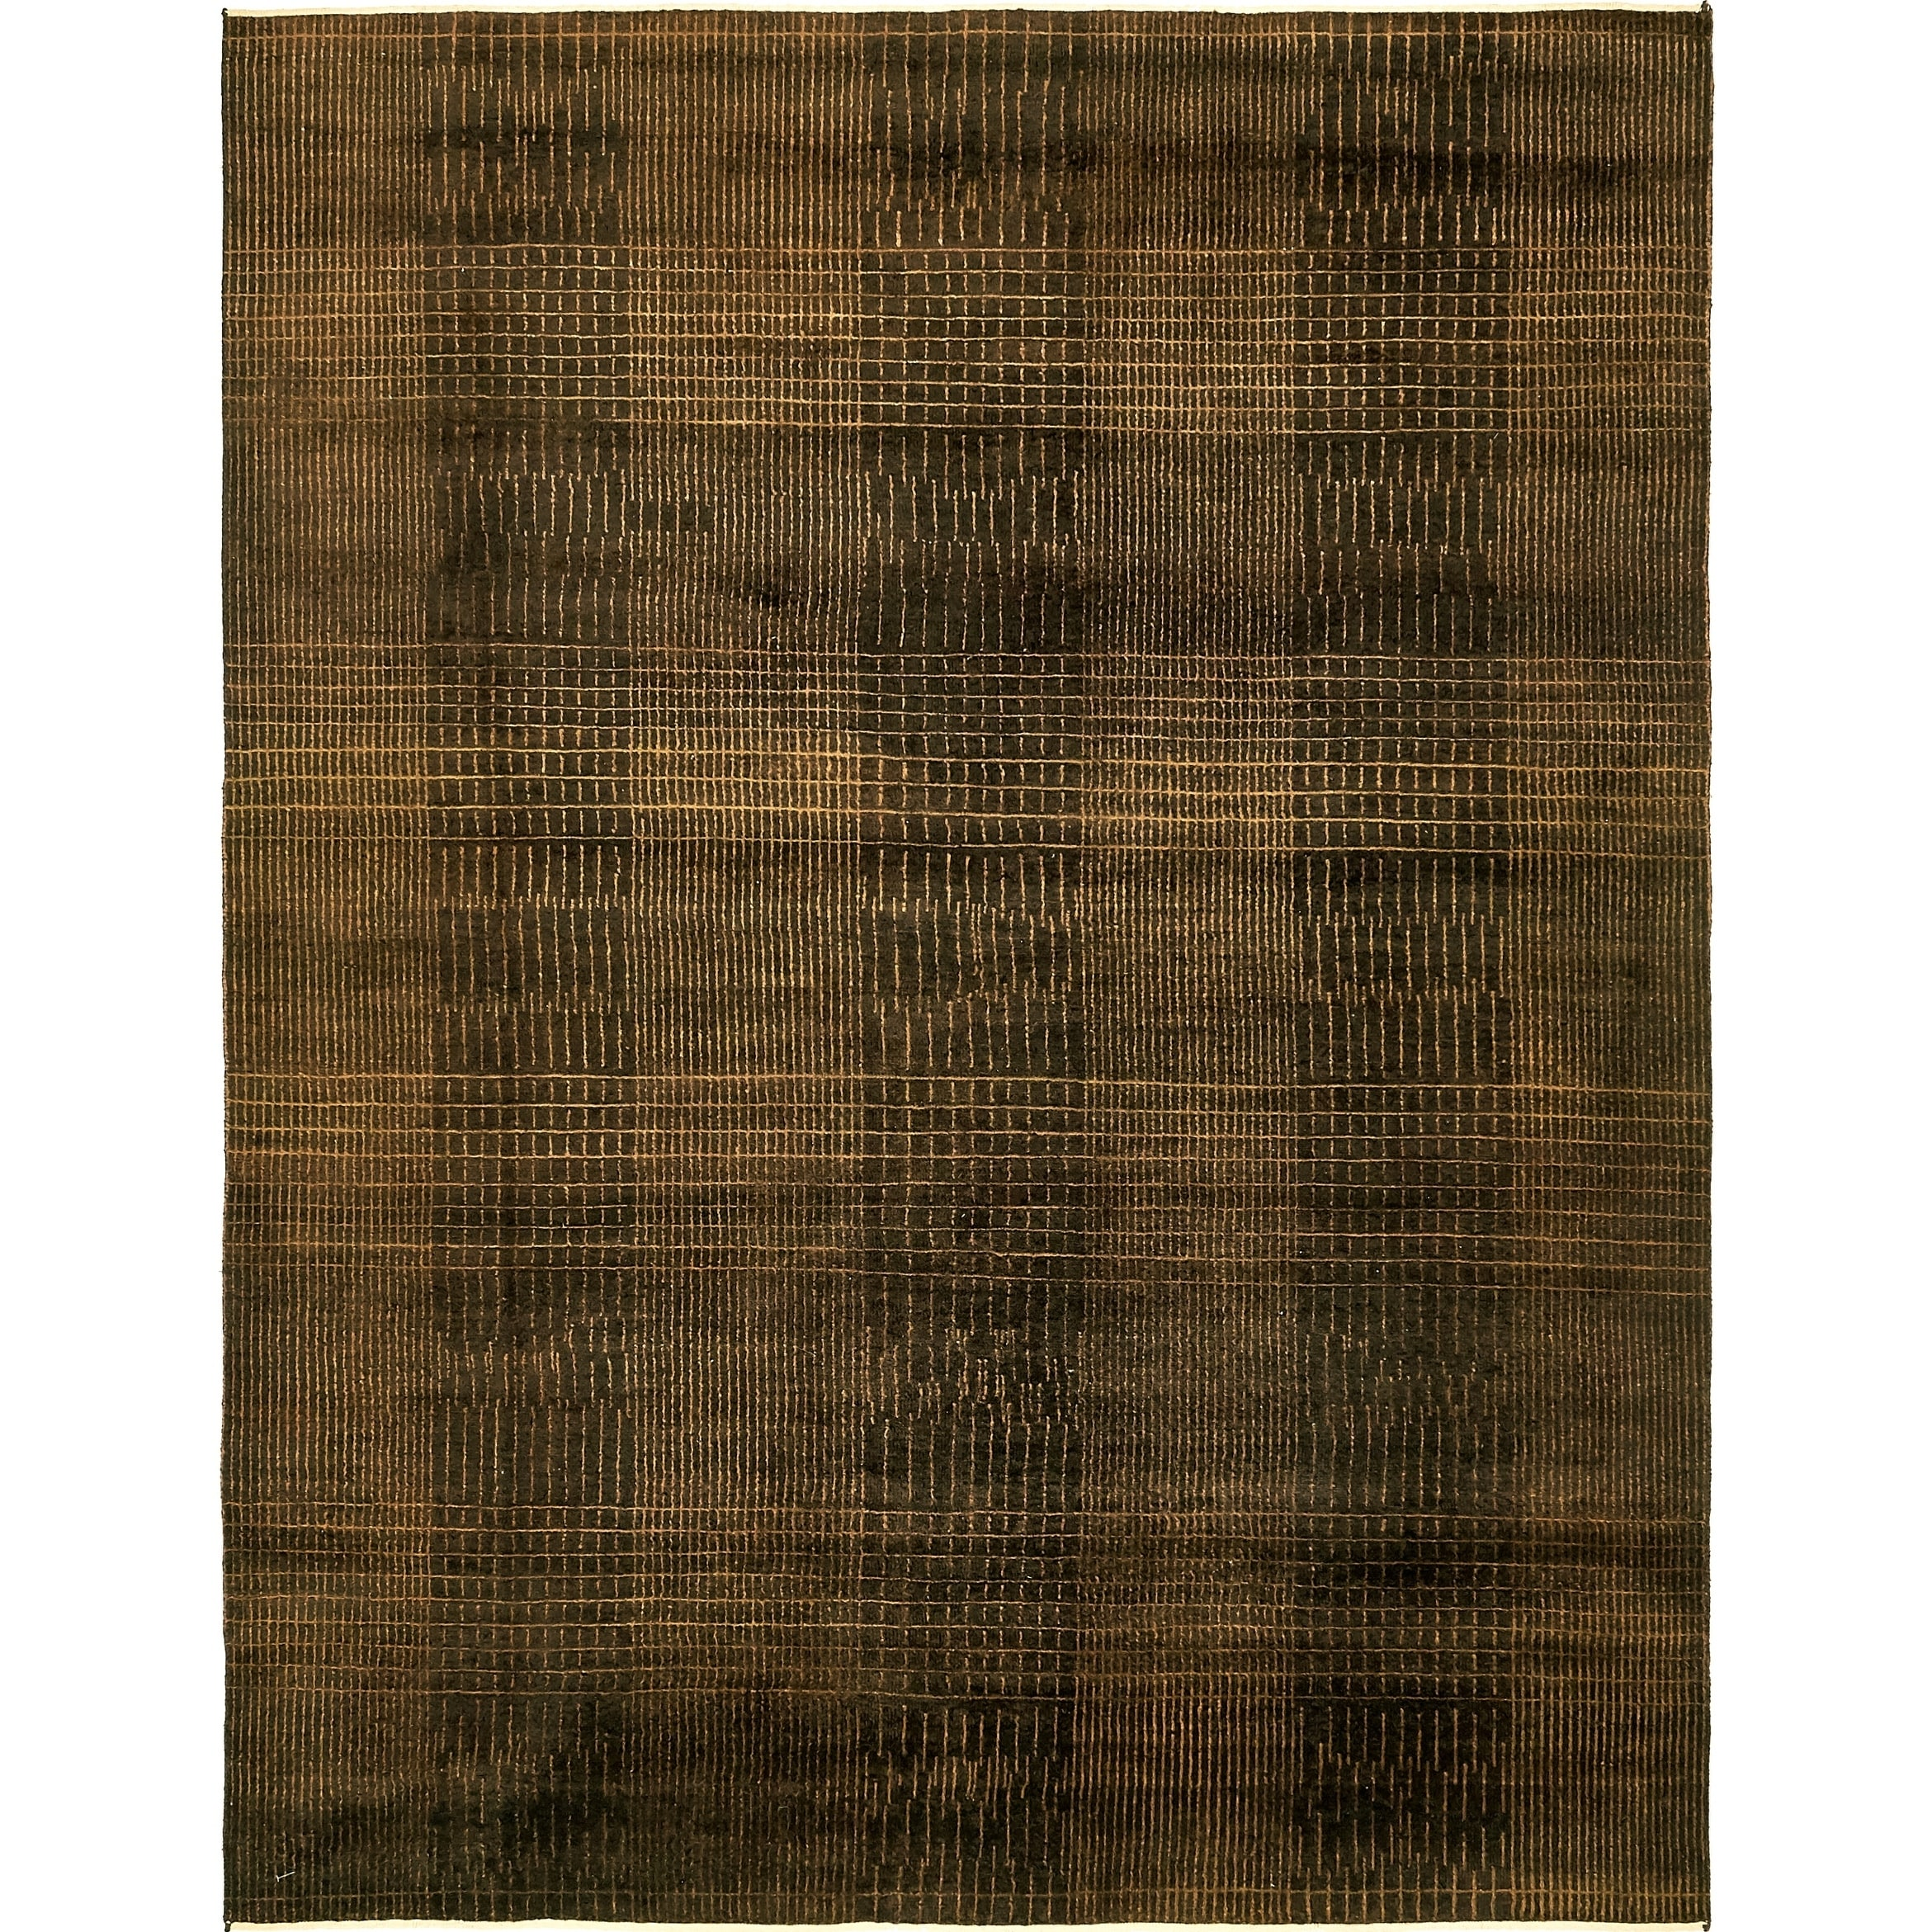 Hand Knotted Kashkuli Gabbeh Silk & Wool Area Rug - 6 5 x 8 4 (Brown - 6 5 x 8 4)